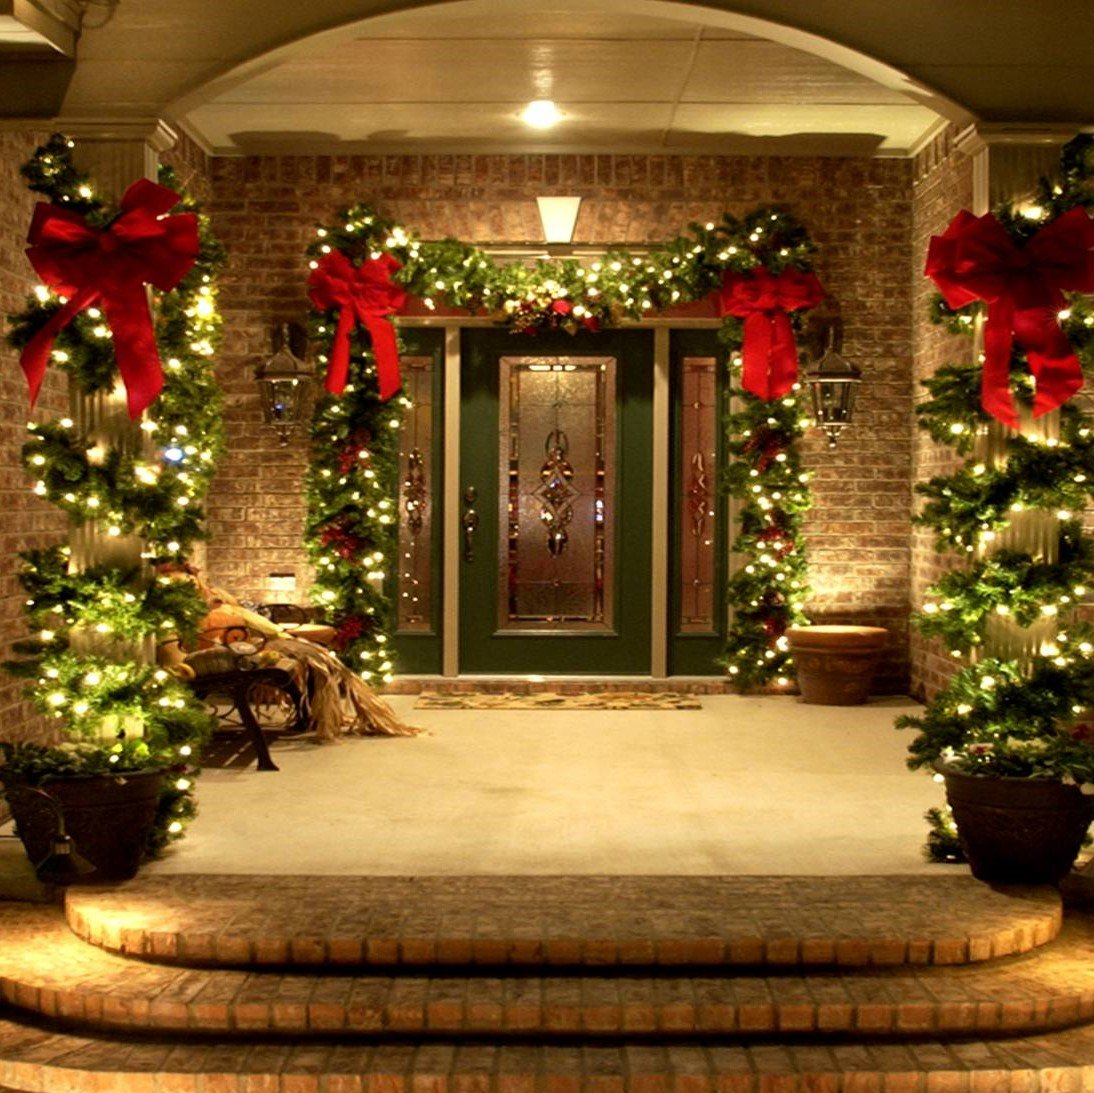 14 Best Outdoor Holiday Decorations Veteran Car Donations